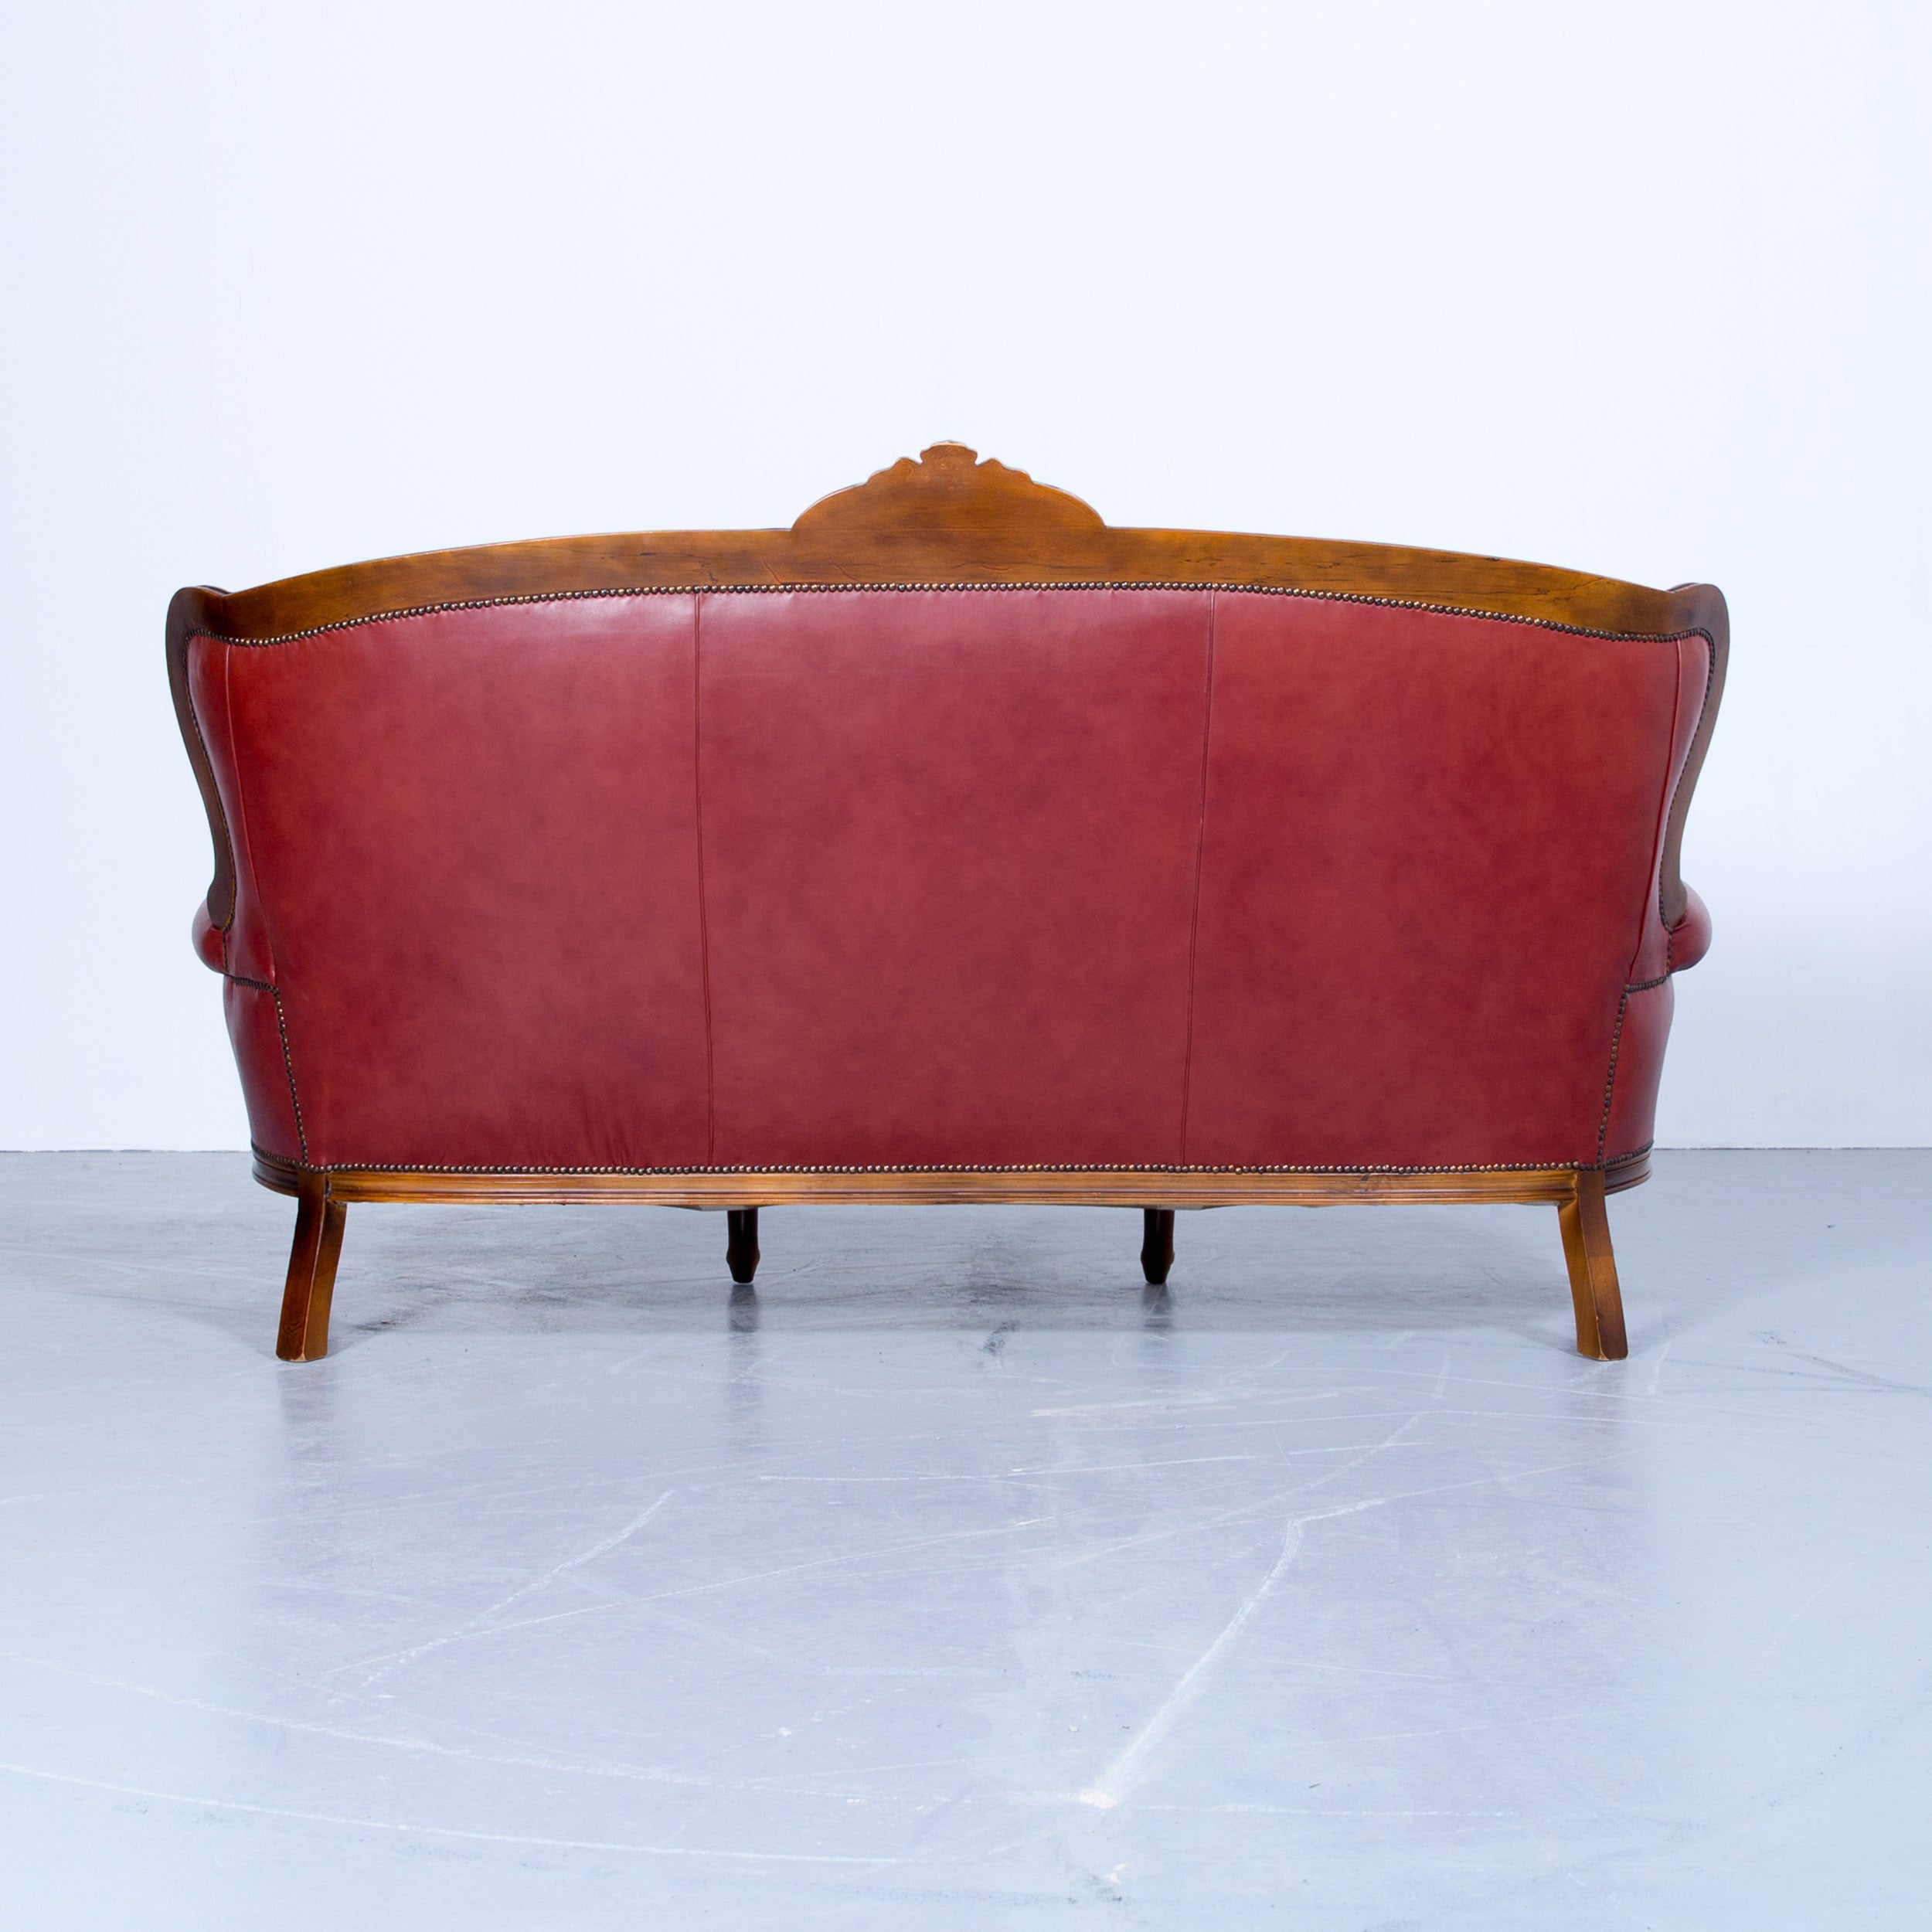 Couch Sessel Barock Chesterfield Sofa Red Brown Leather Three Seat Couch Vintage Rivets